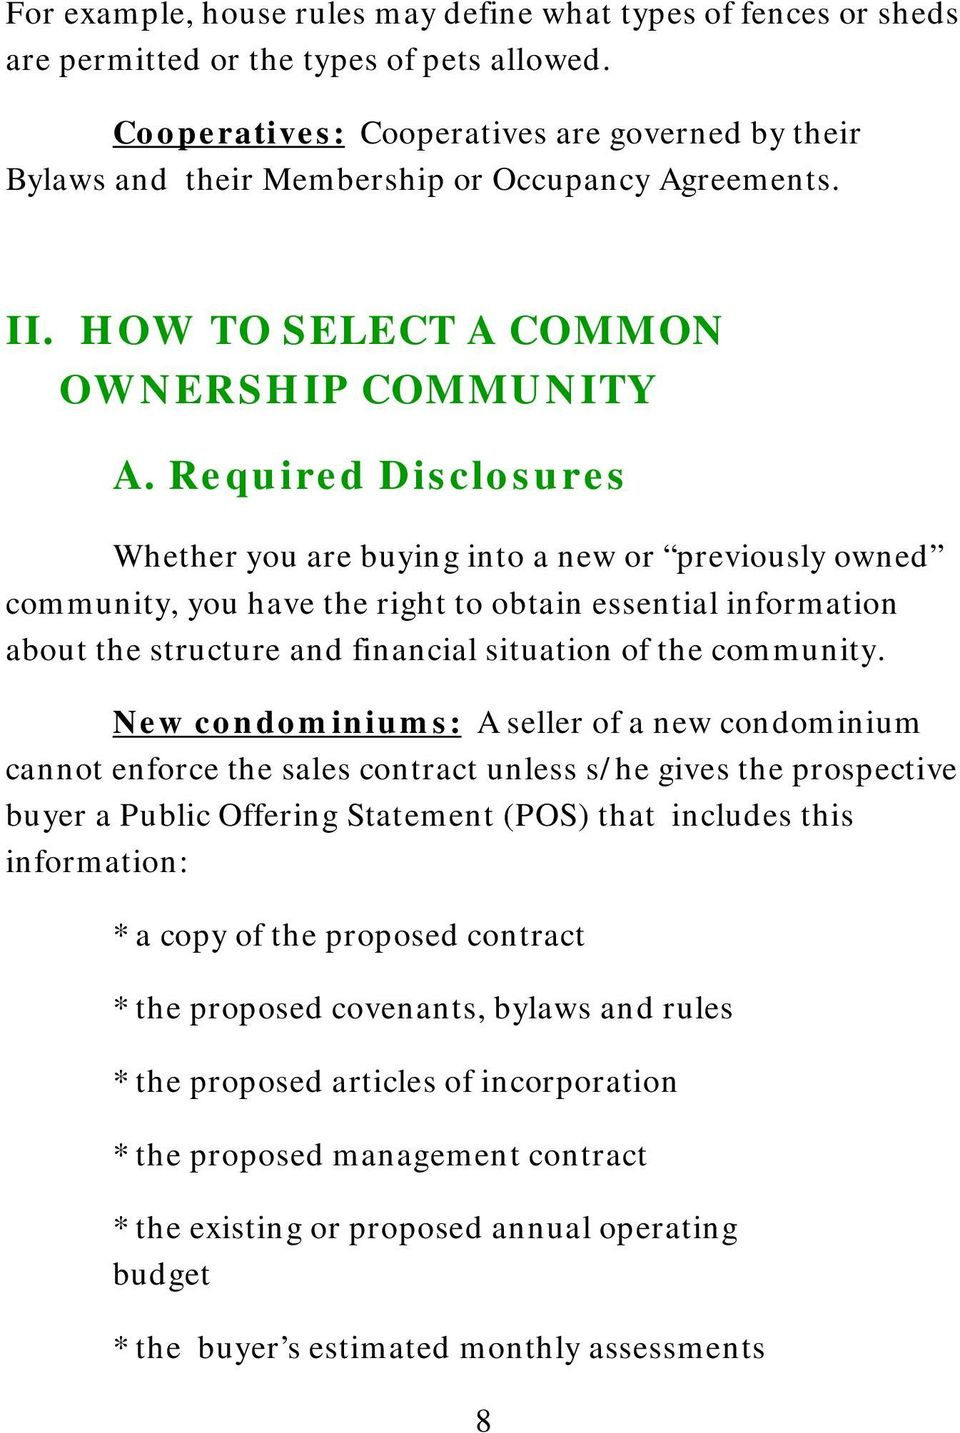 Required Disclosures Whether you are buying into a new or previously owned community, you have the right to obtain essential information about the structure and financial situation of the community.